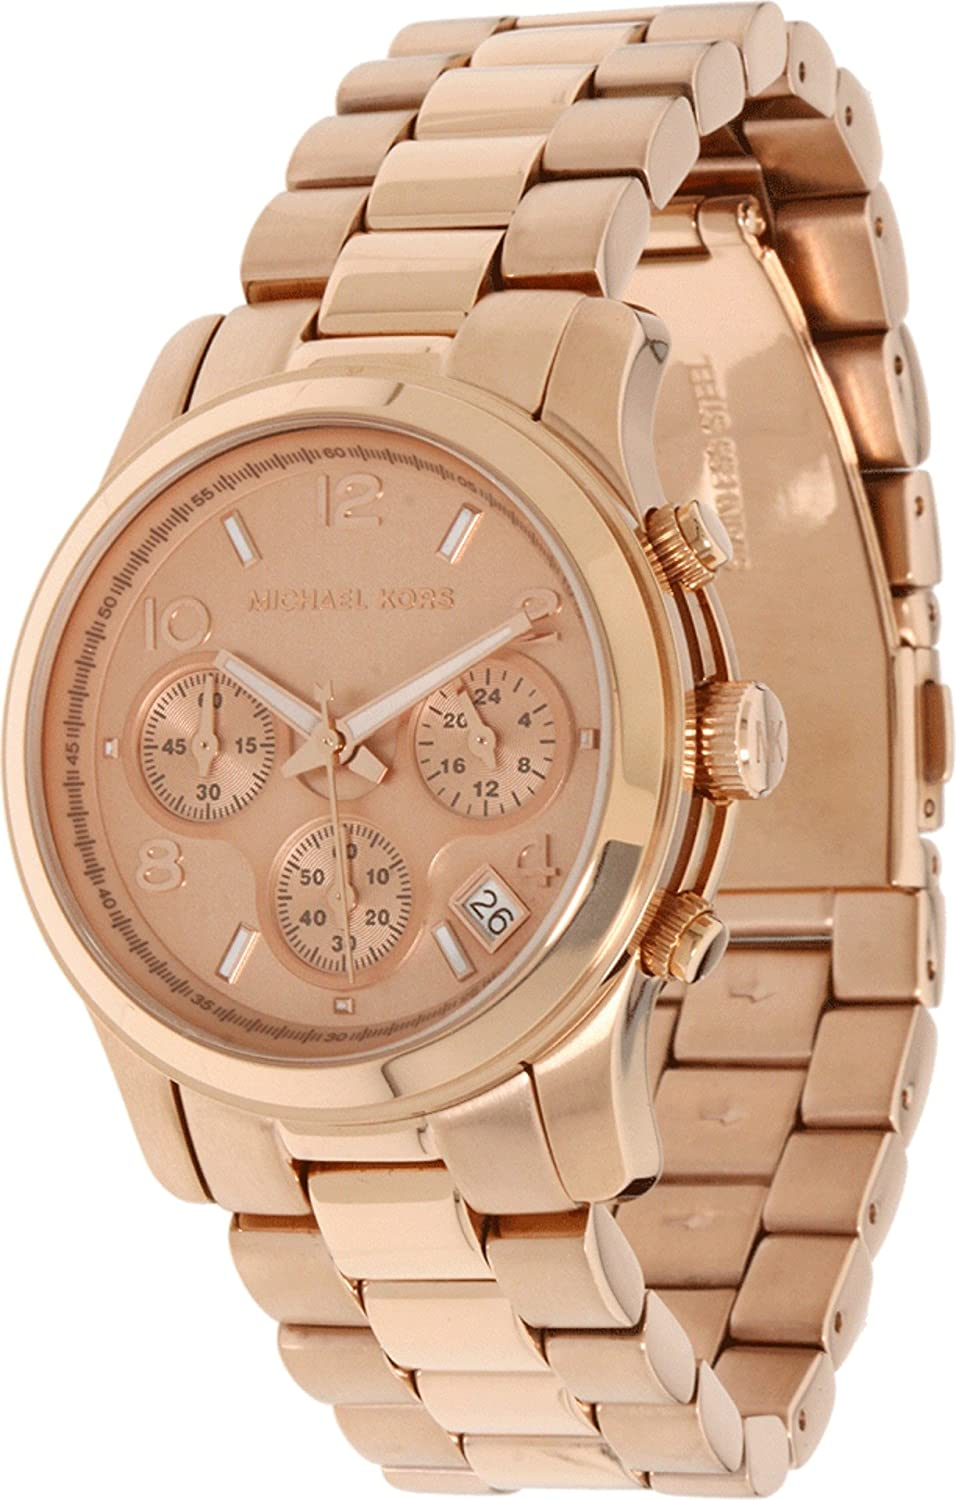 Michael Kors Rose Gold Watch Review Michael Kors Rose Gold Women